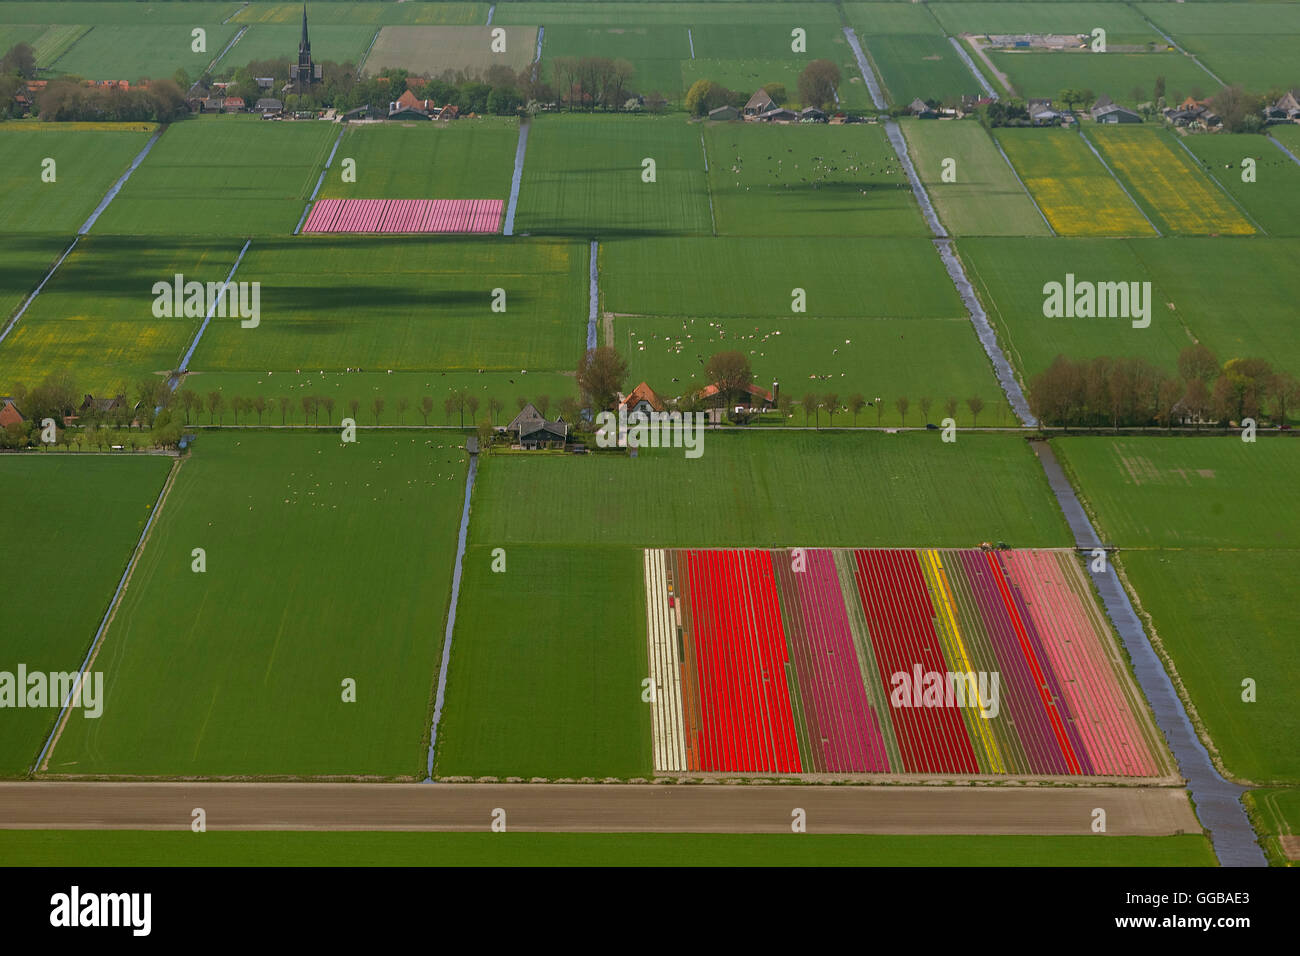 Aerial view, tulip fields, agriculture, colorful tulip fields, tulips (lat.Tulipa), ornamental flowers, Zuidoostbeemster, Stock Photo